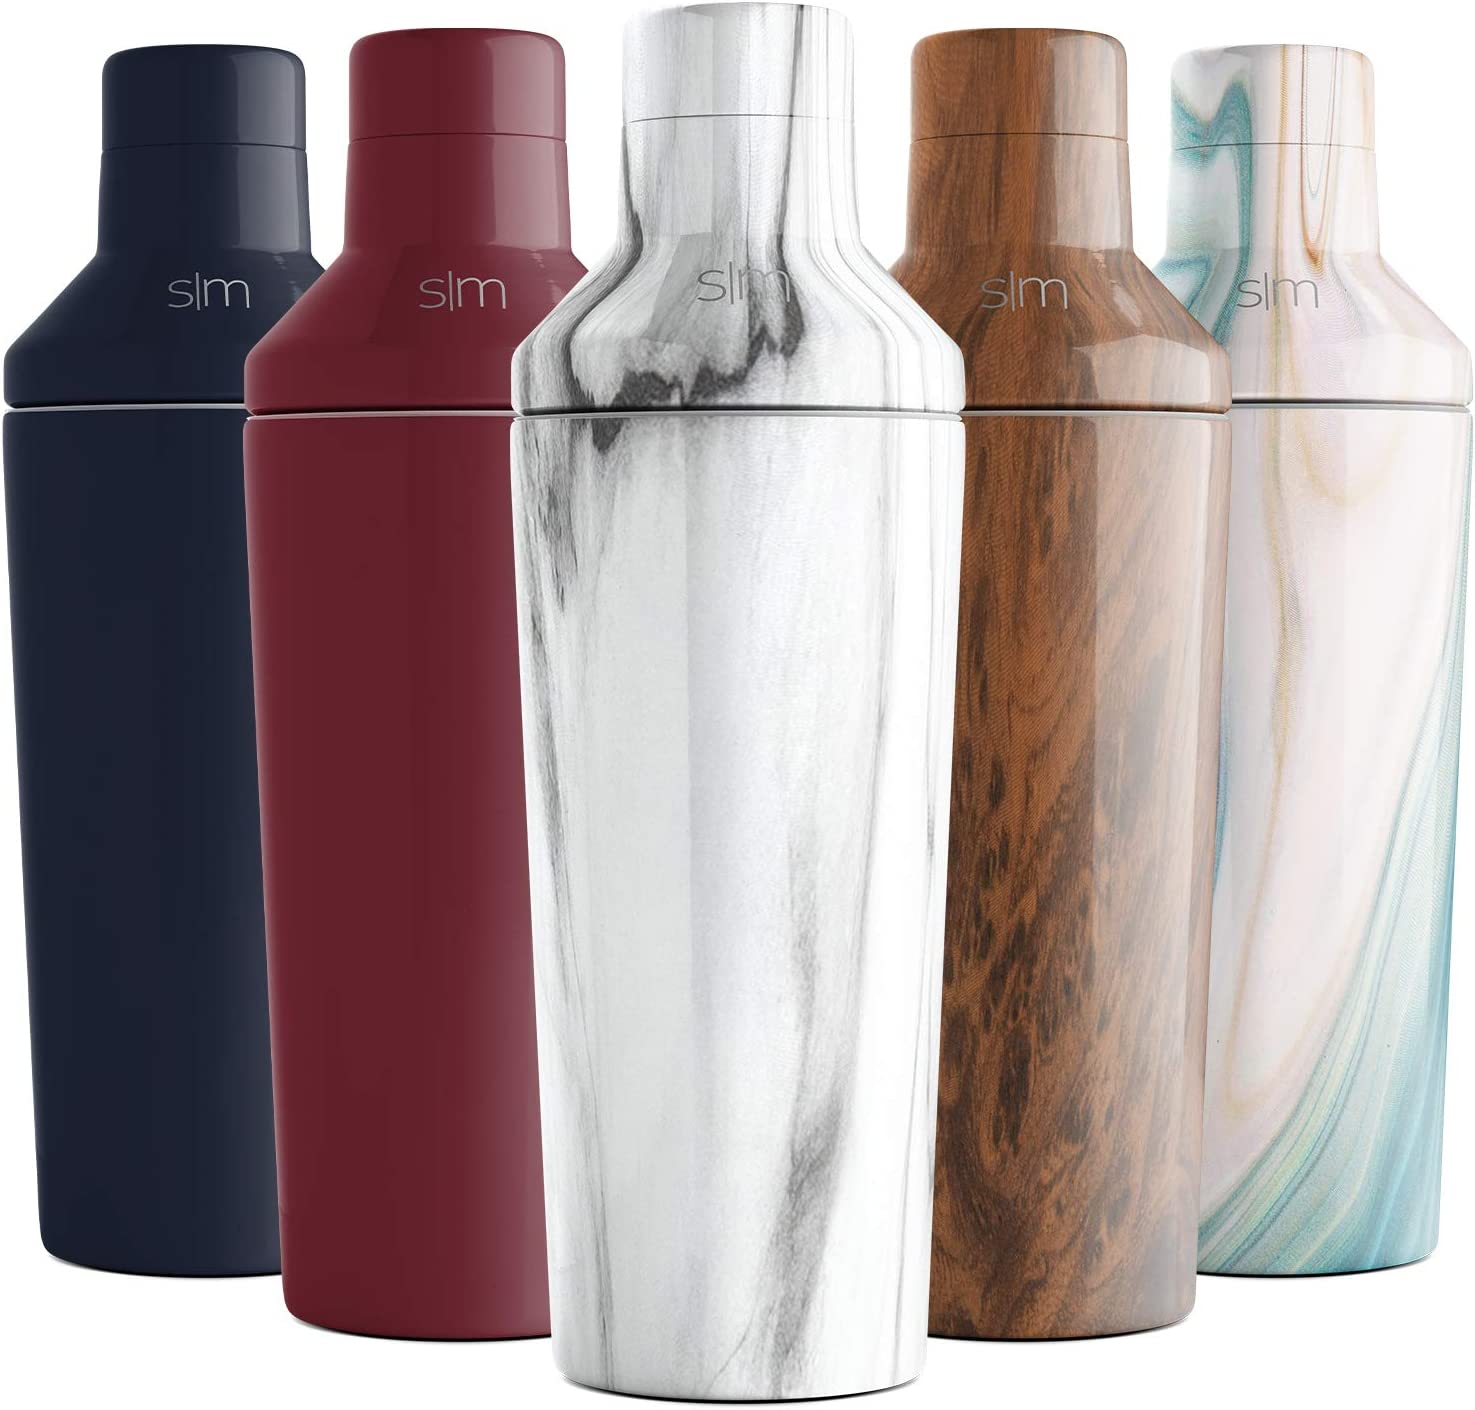 Simple Don't miss the campaign Modern 20oz Cocktail Martini Shaker Lid with Jigger - Super sale period limited Vac